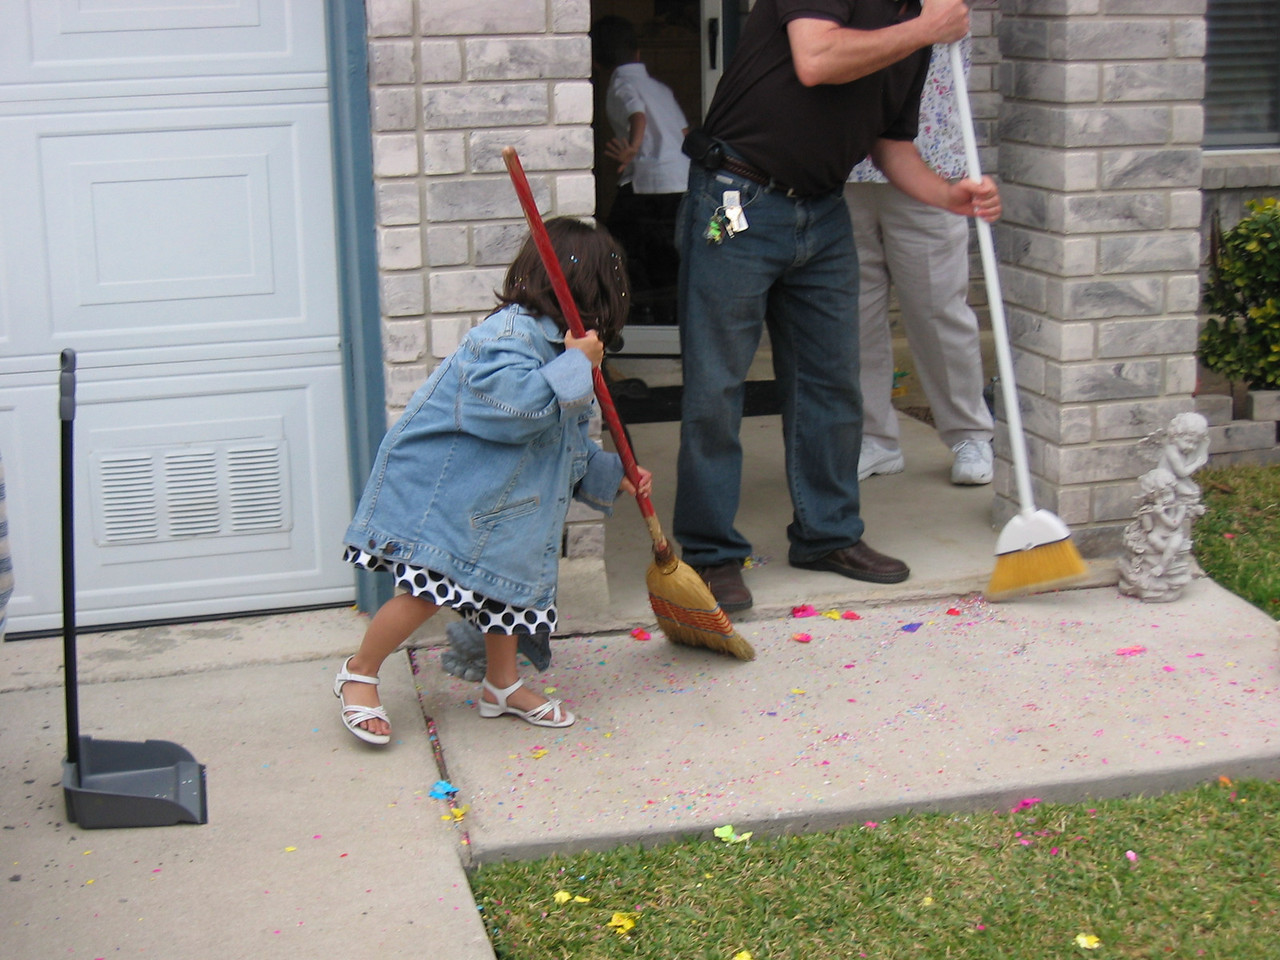 Now this is cute!  She even cleaned up afterwards.